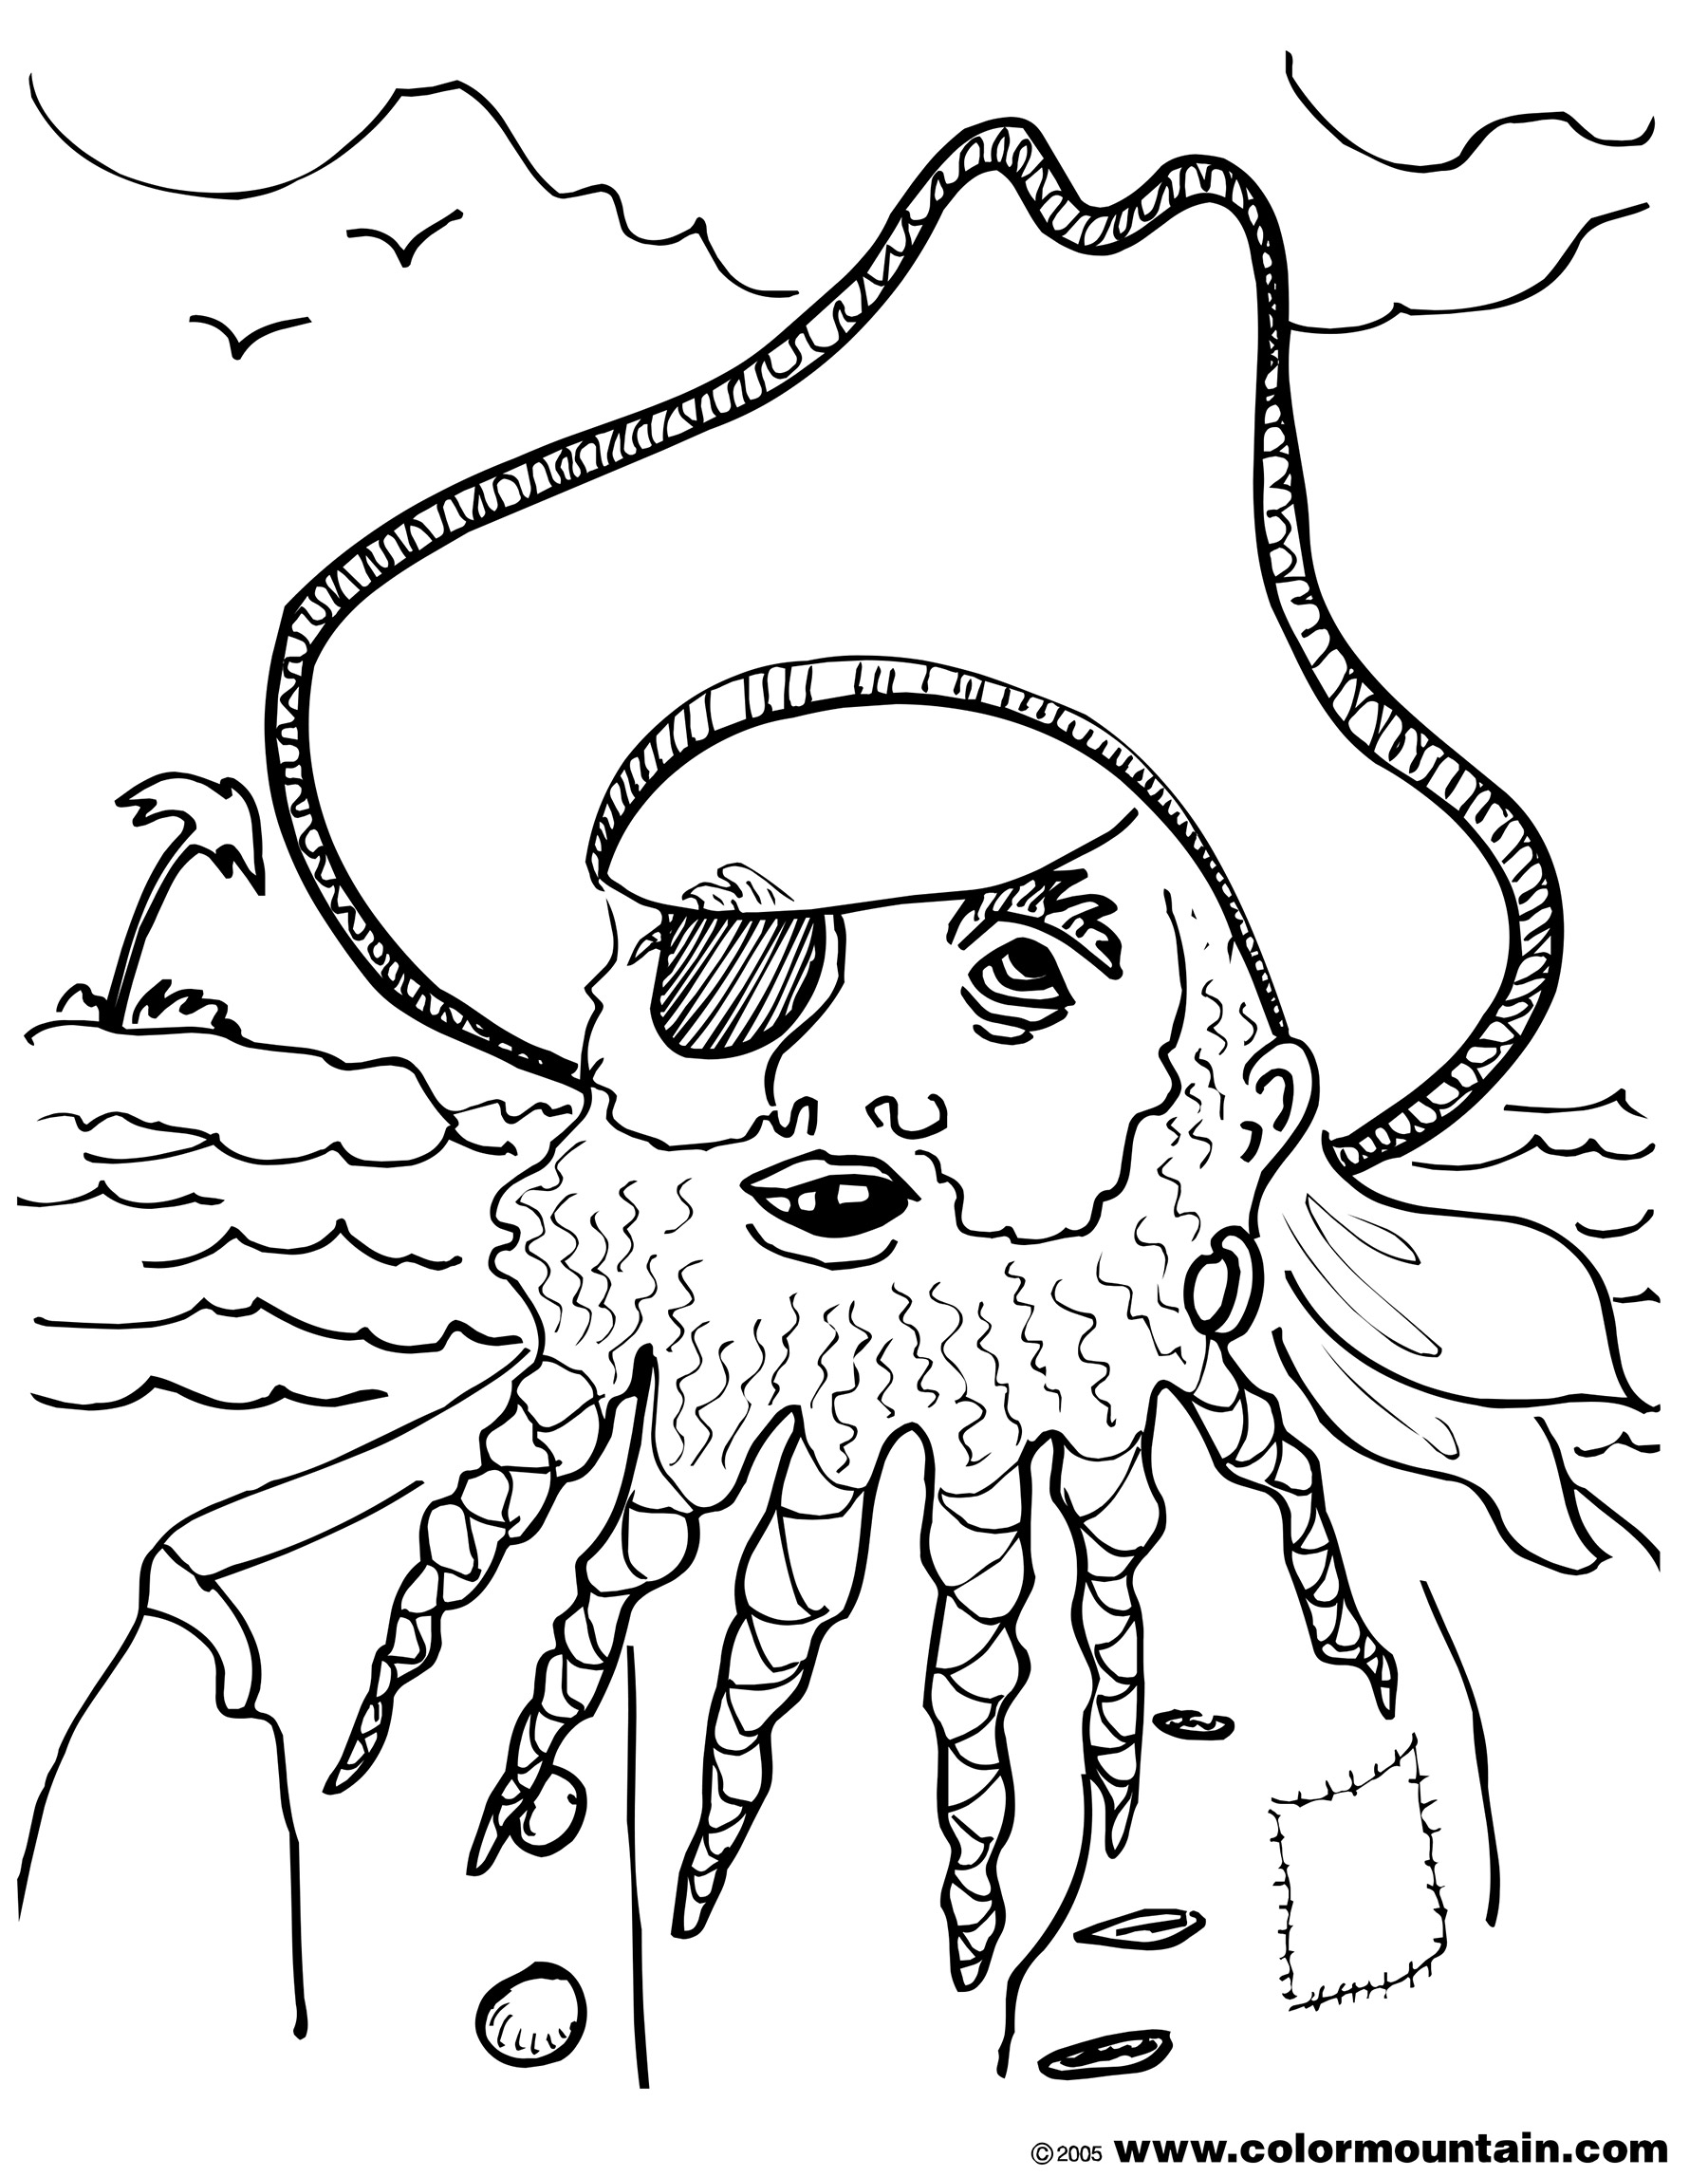 blackbeard drawing at getdrawings com free for personal use pirate hat coloring page 1800x2294 free pirate